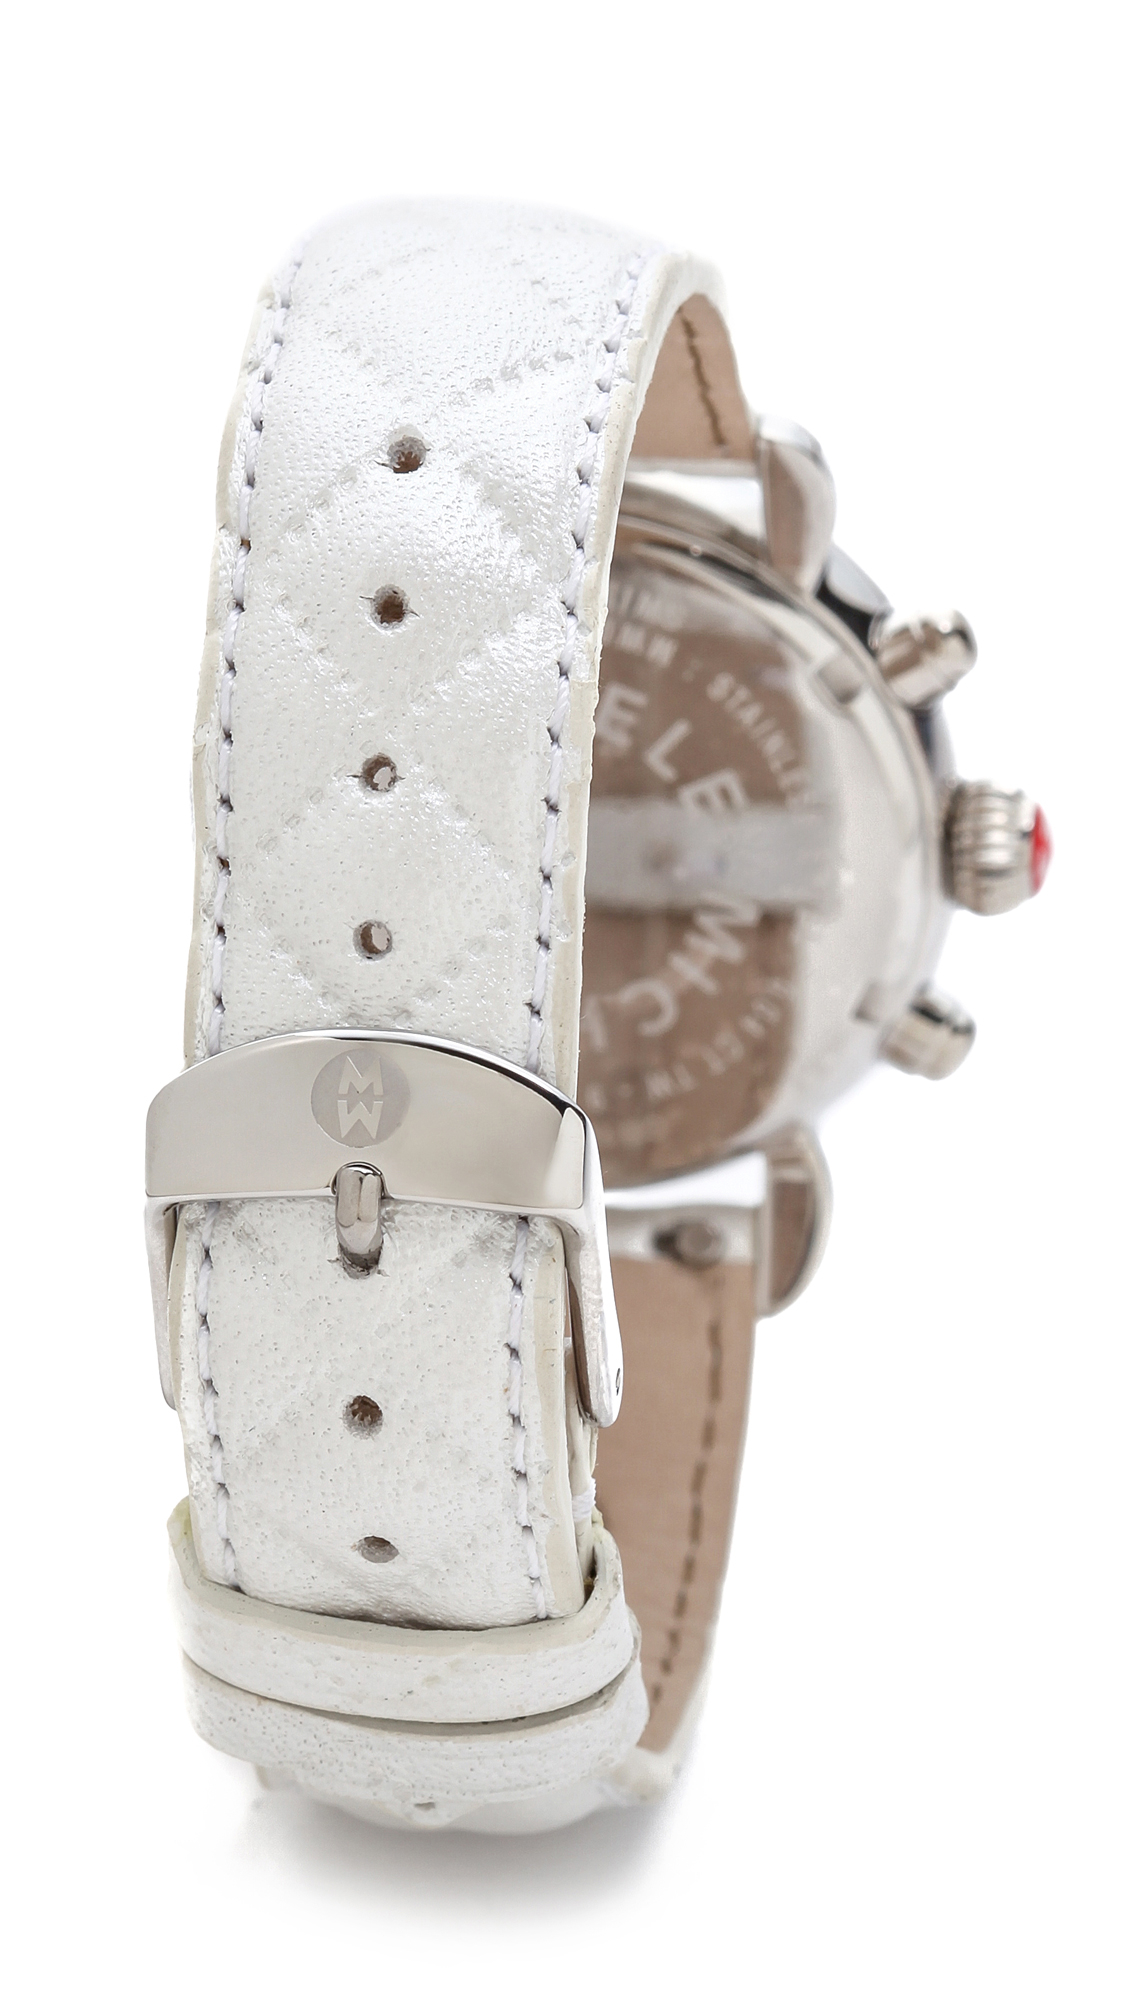 Michele 18mm Quilted Leather Watch Strap White In White